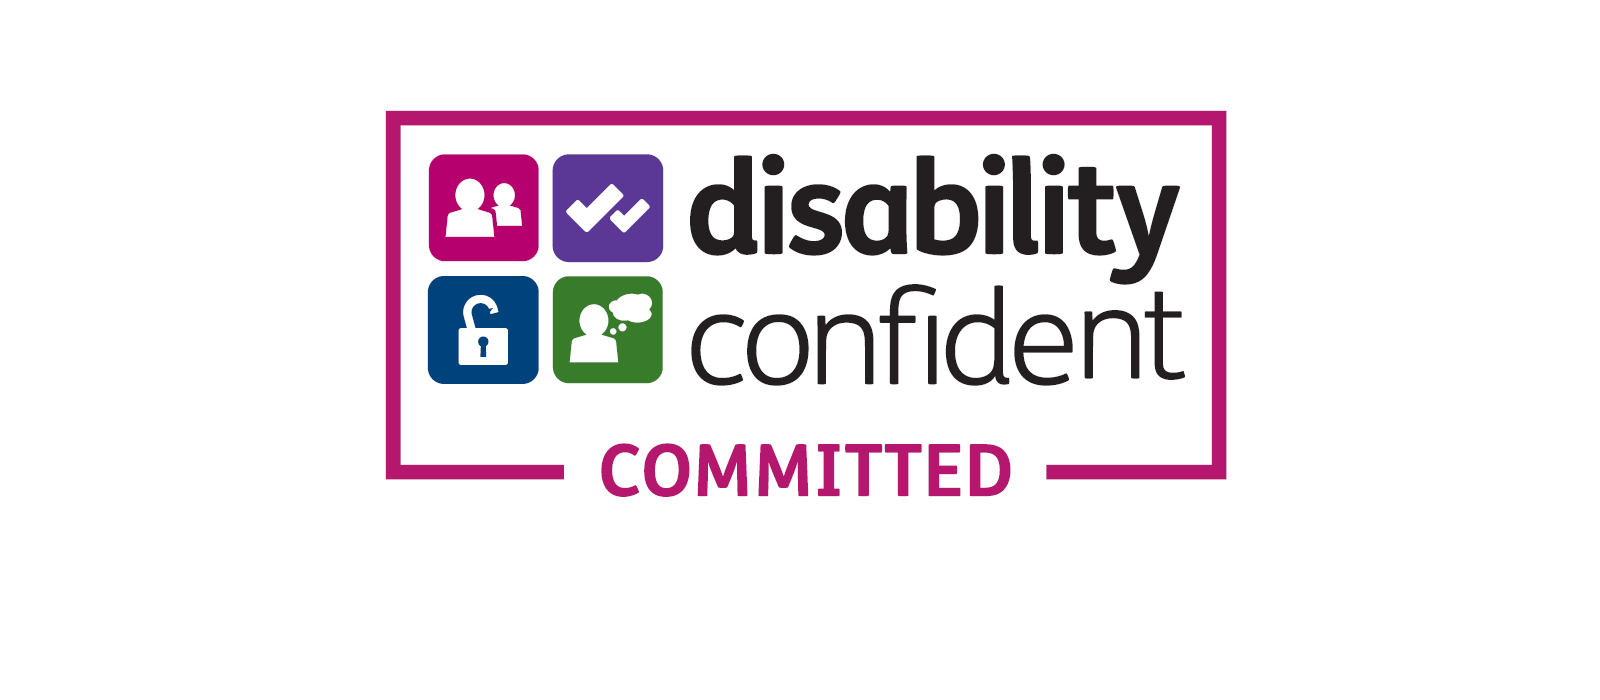 https://www.charityretail.org.uk/wp-content/uploads/2018/02/disability-confident-committed.png